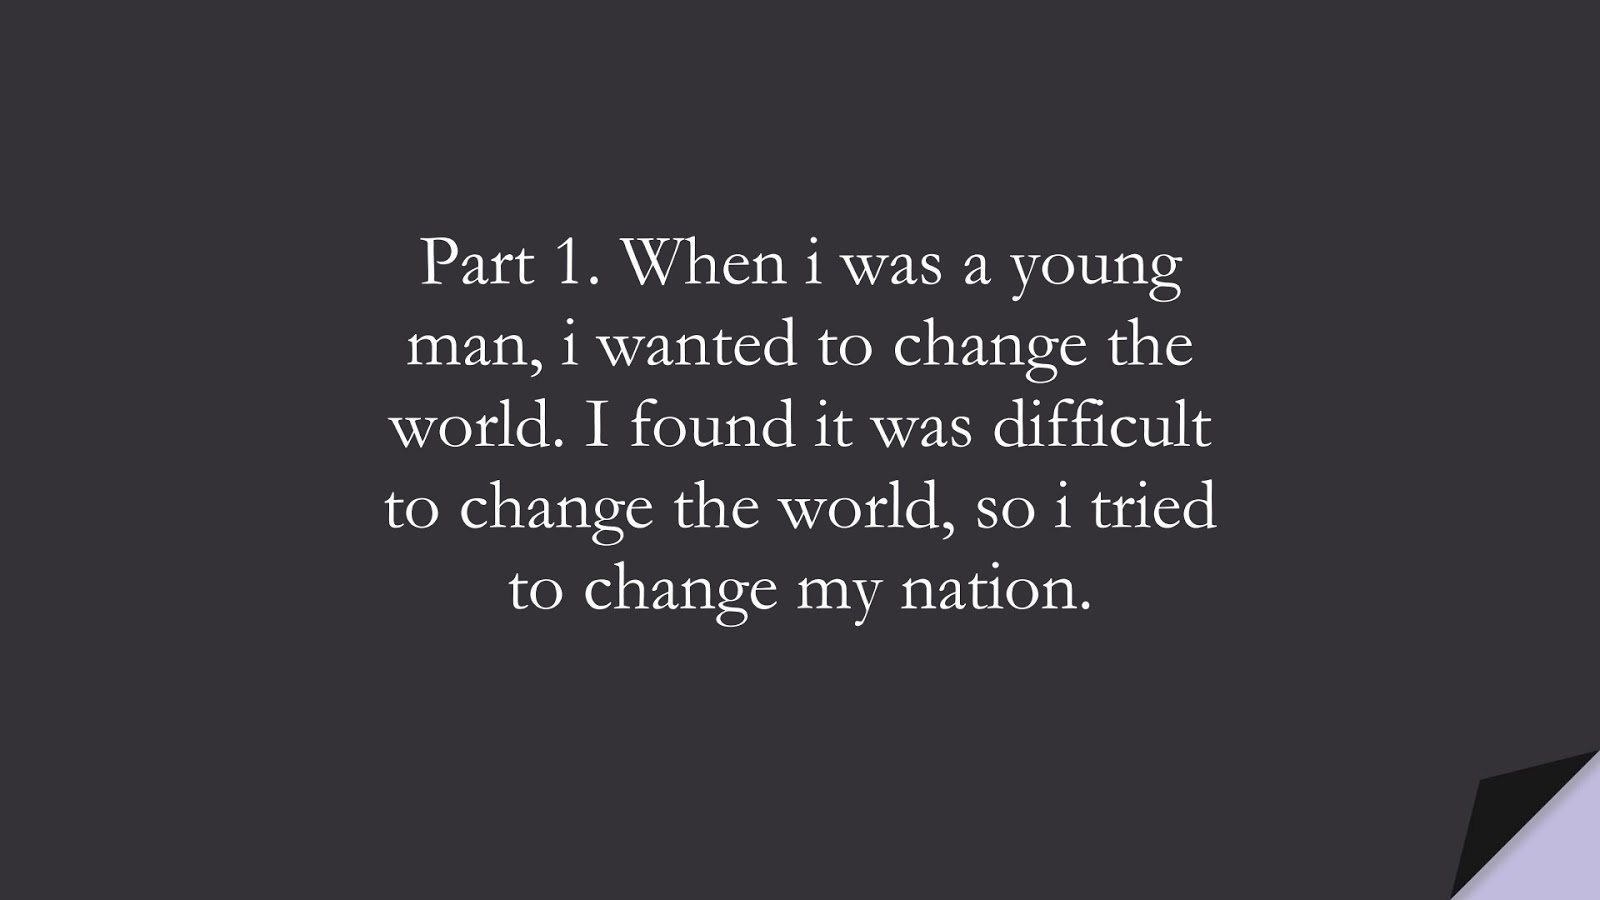 Part 1. When i was a young man, i wanted to change the world. I found it was difficult to change the world, so i tried to change my nation.FALSE